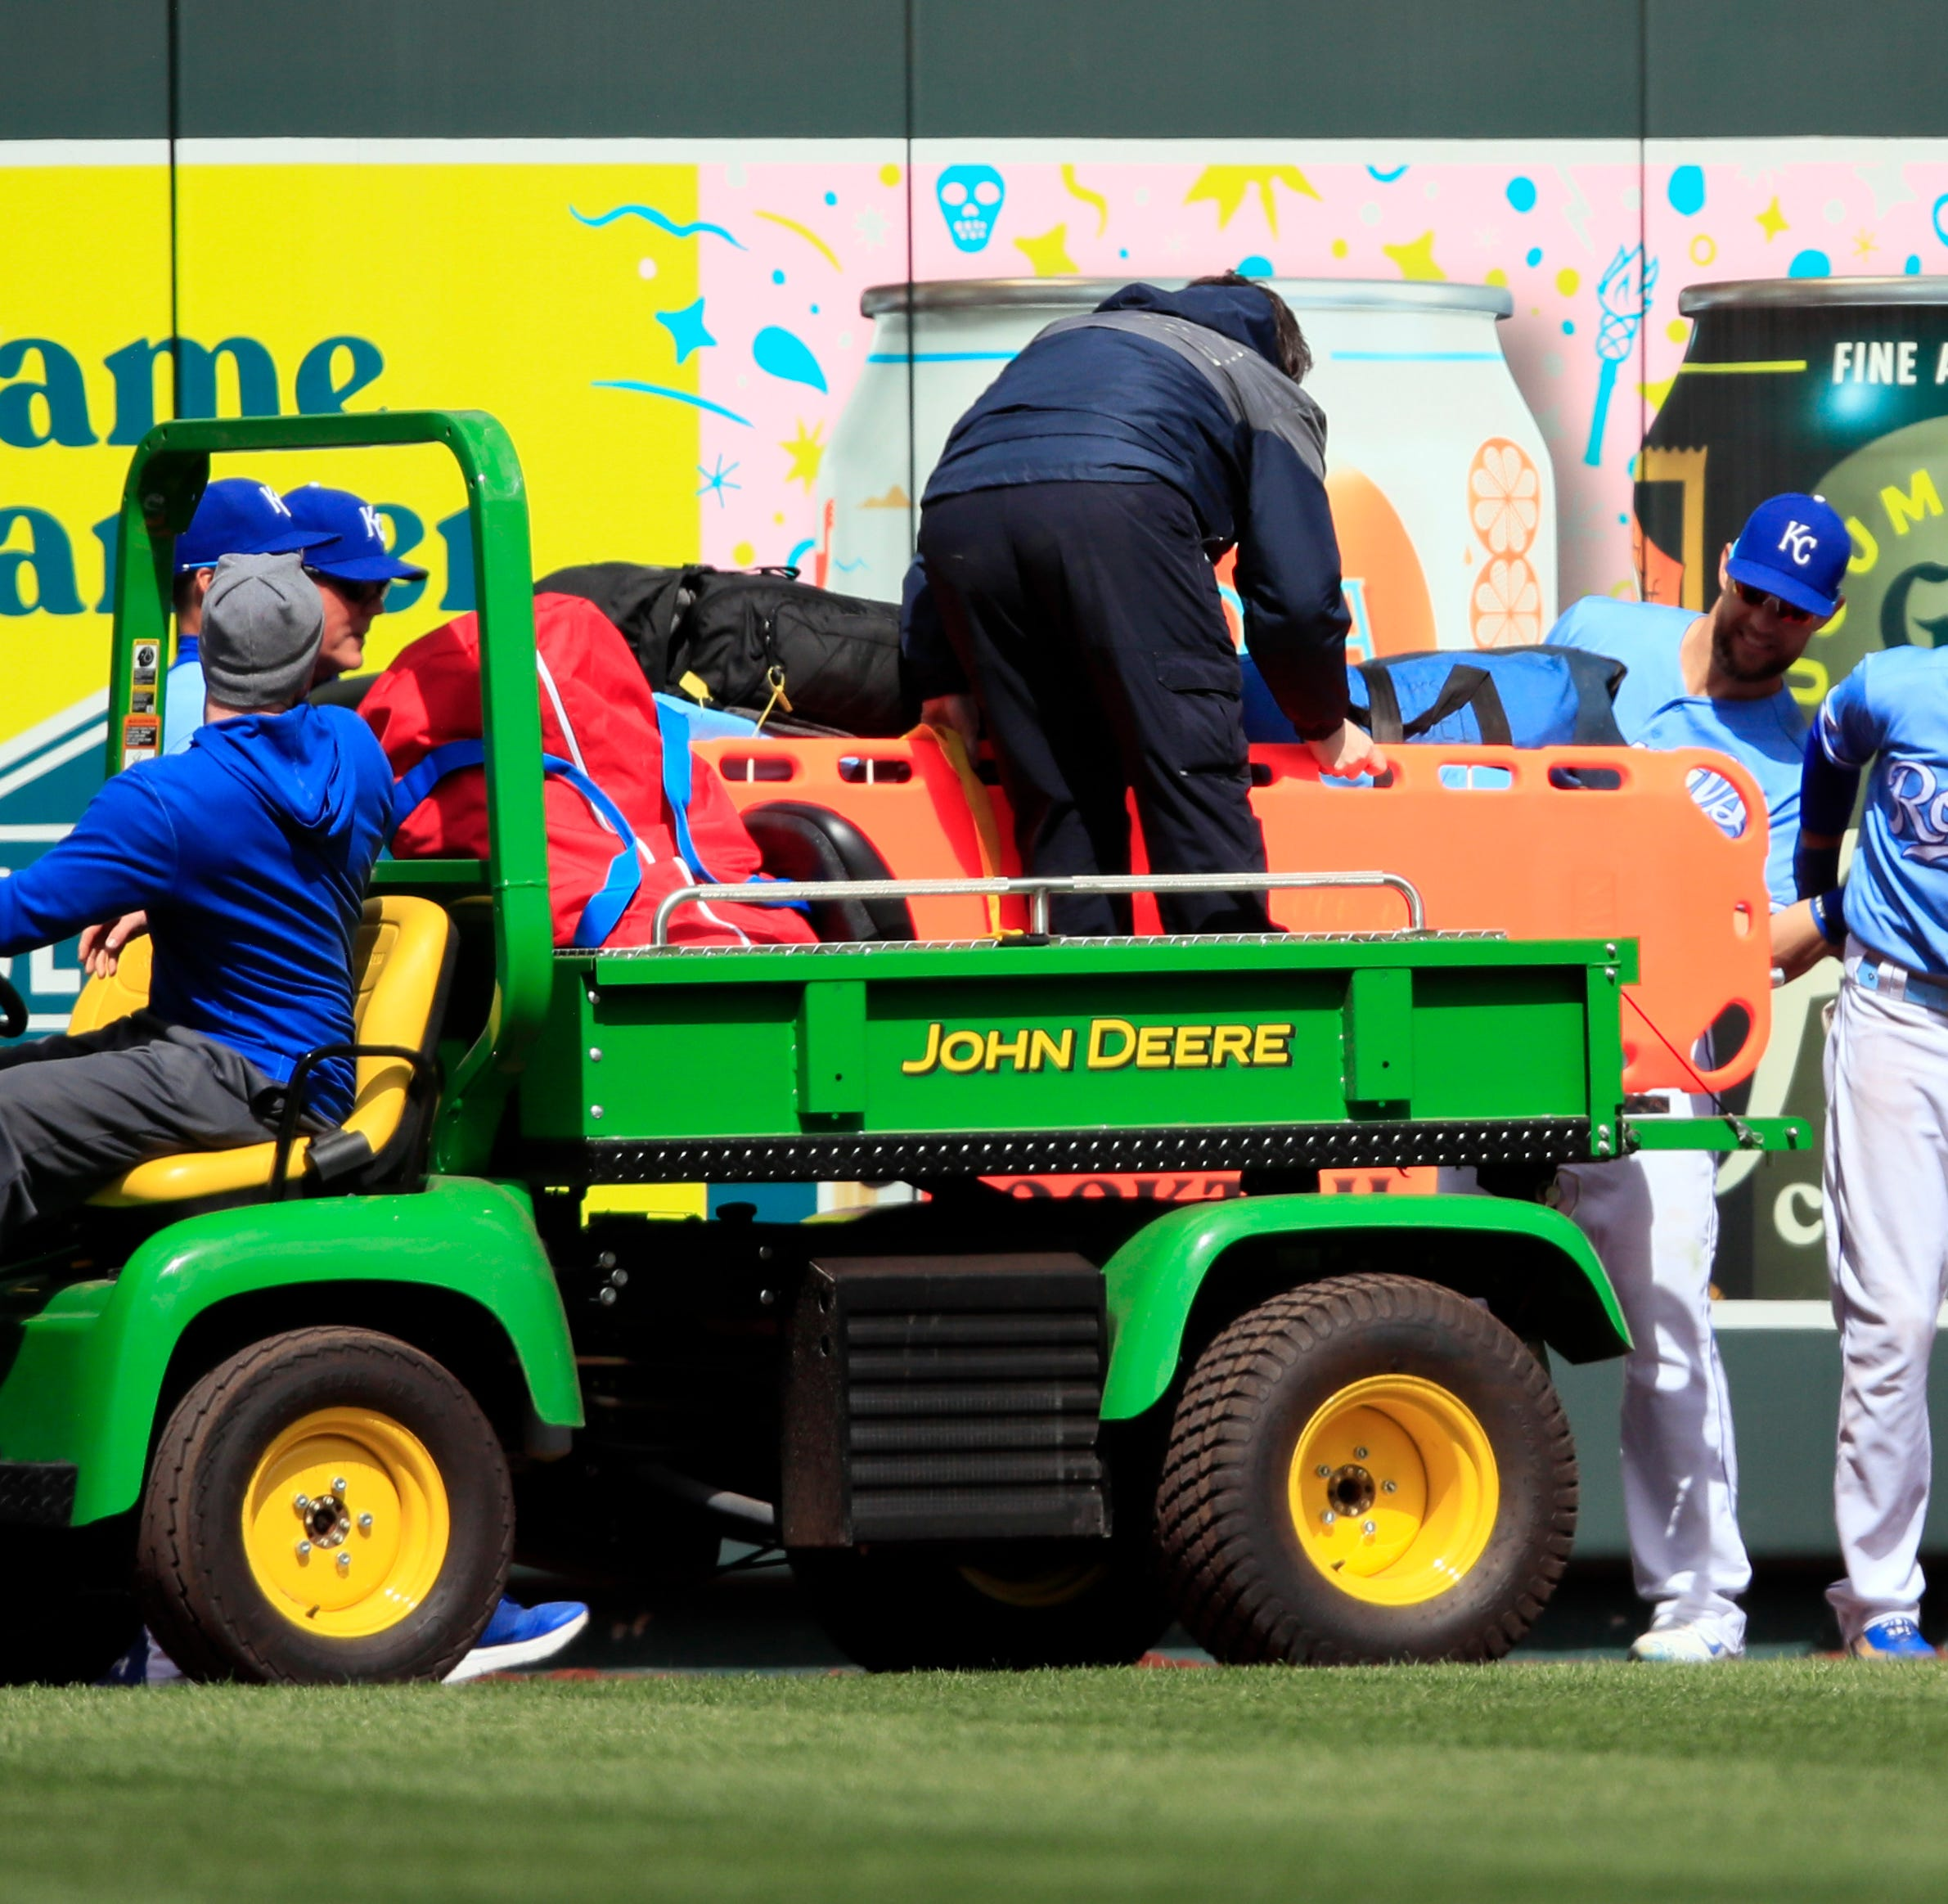 Billy Hamilton carted off with knee injury during Royals-Mariners game